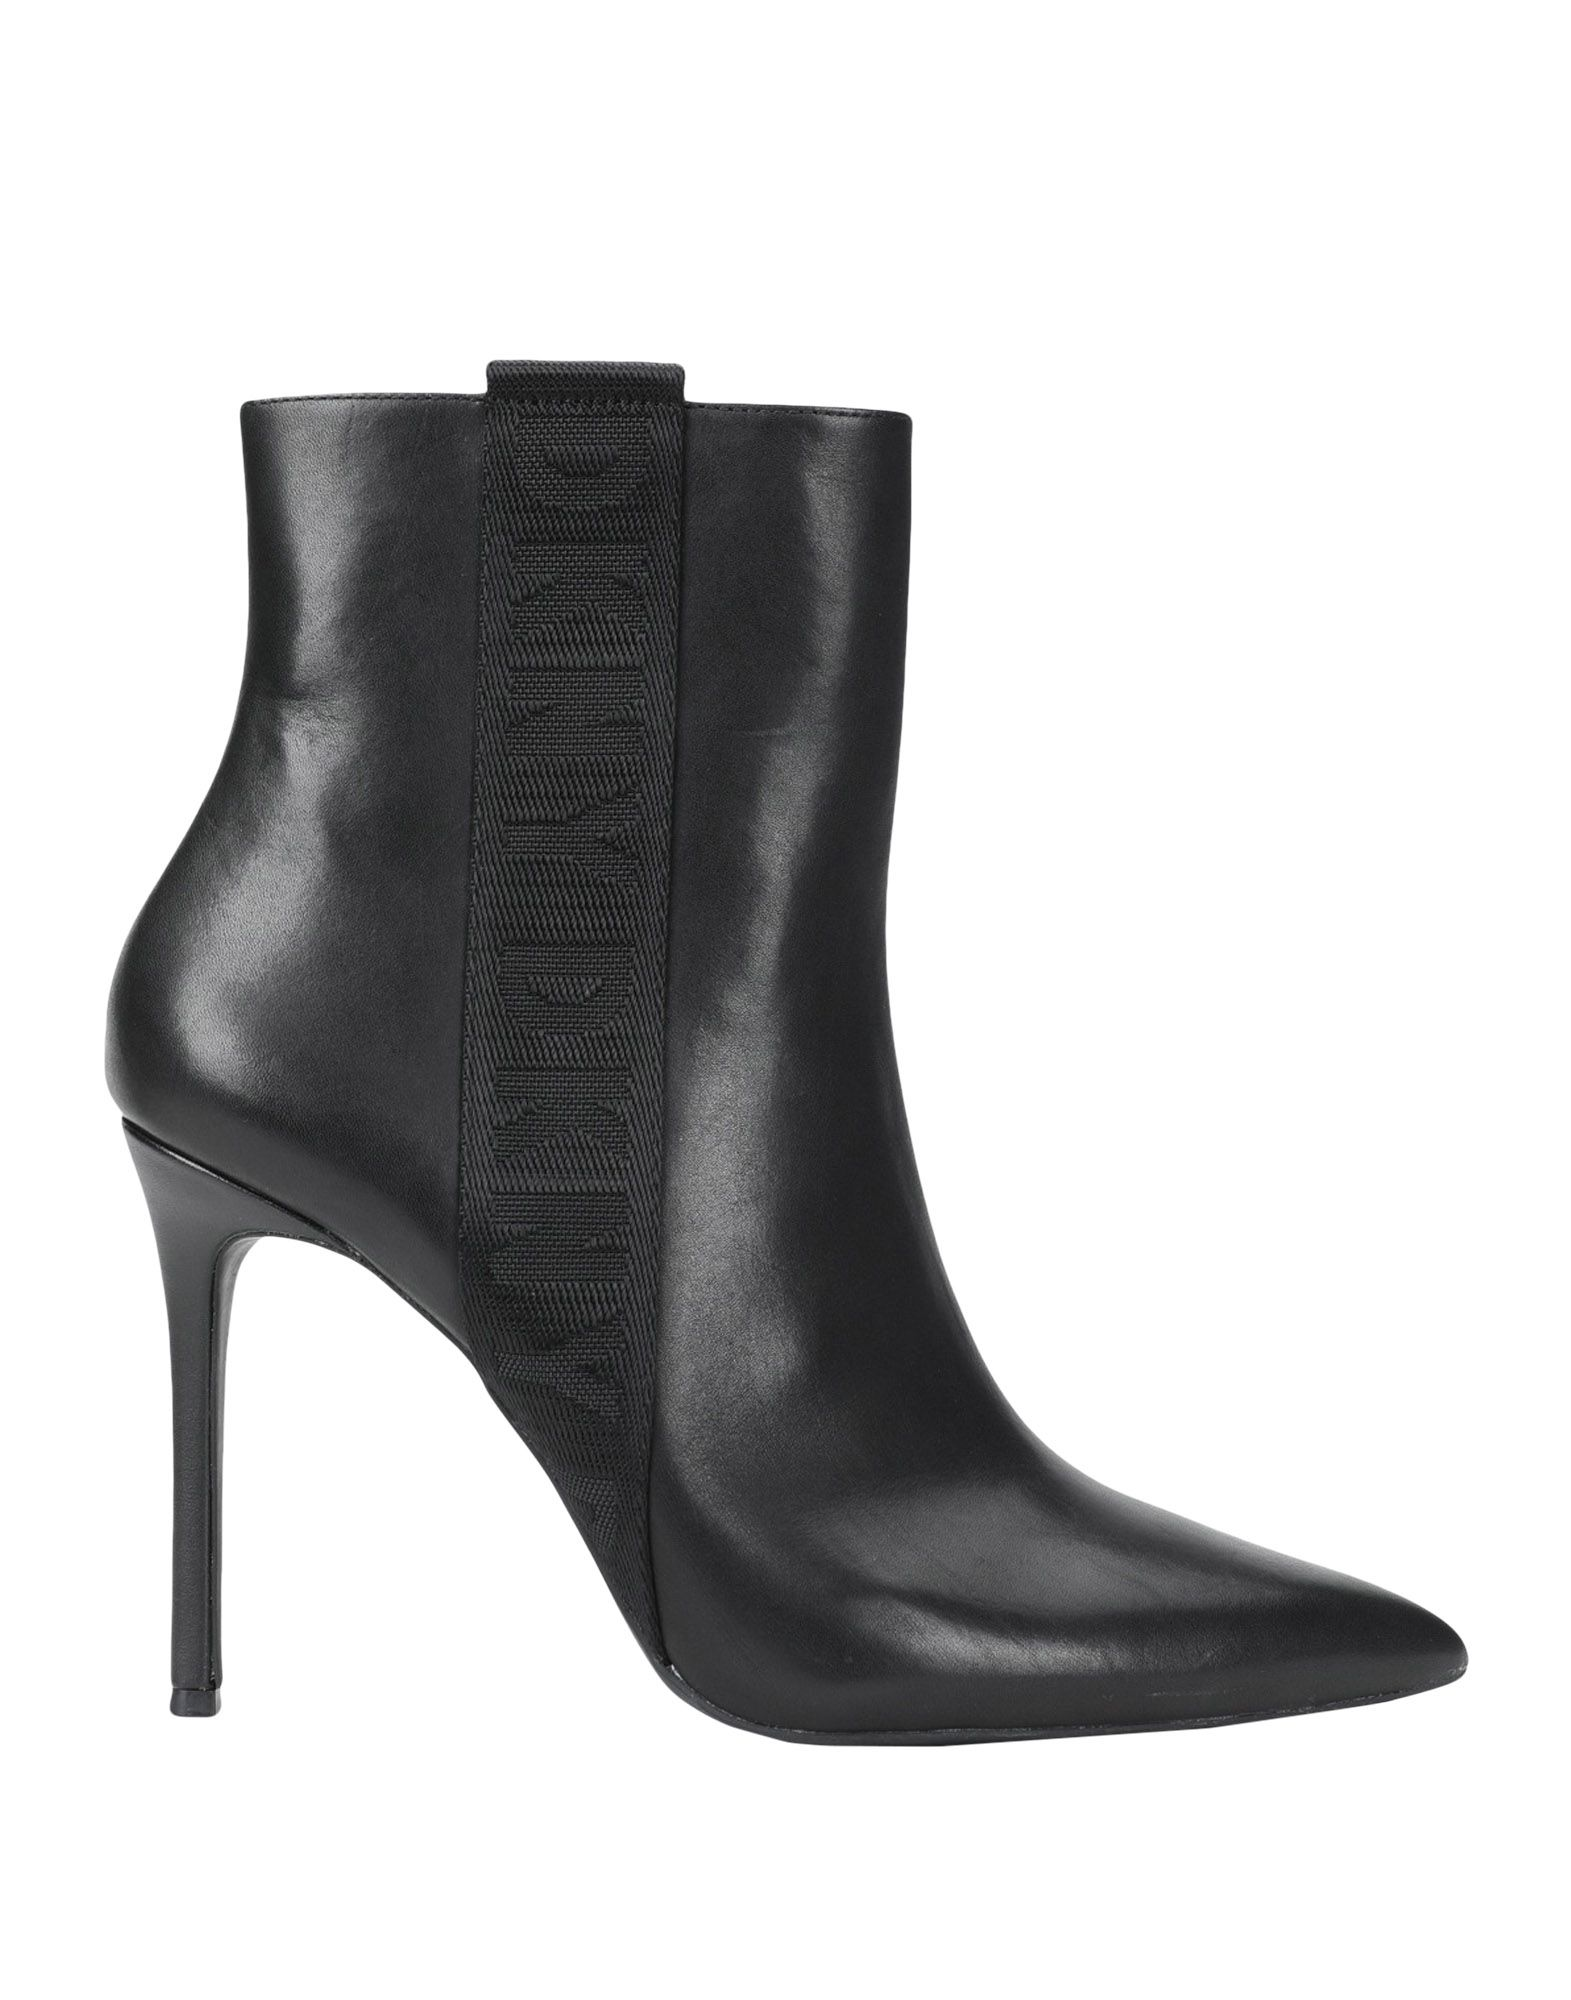 Chaussures Femme Yoox Yoox Chaussures Dkny Femme Dkny Yoox Dkny Chaussures Femme Dkny Chaussures Femme Yoox Chaussures 14Btn84